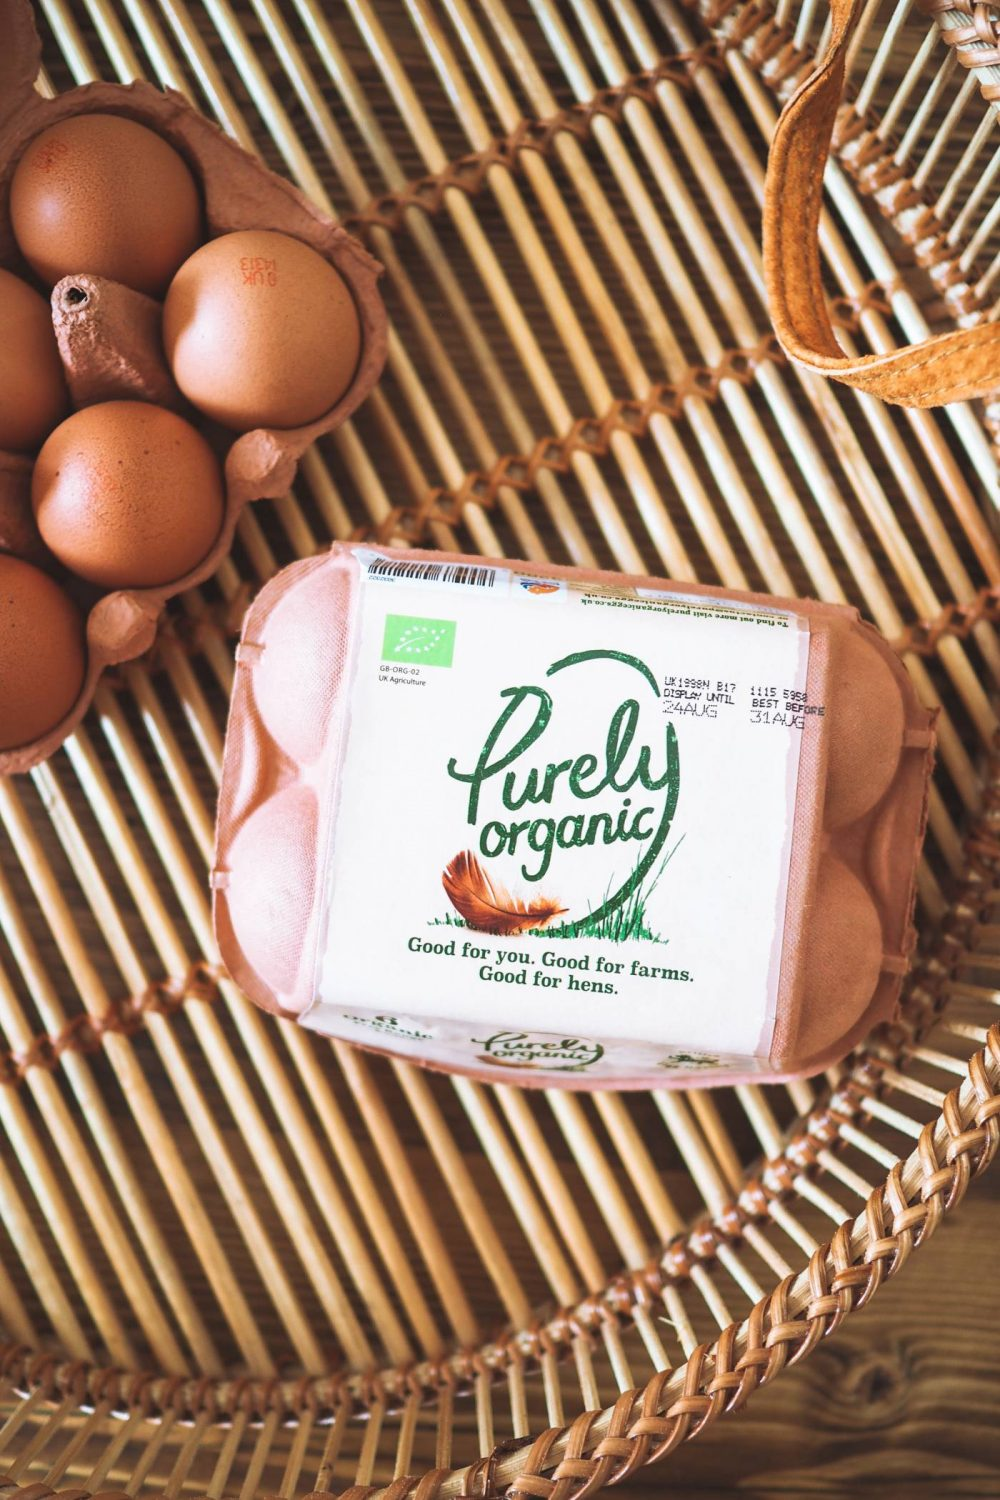 A flat lay image of a box of Purely Organic Eggs on a bamboo tray